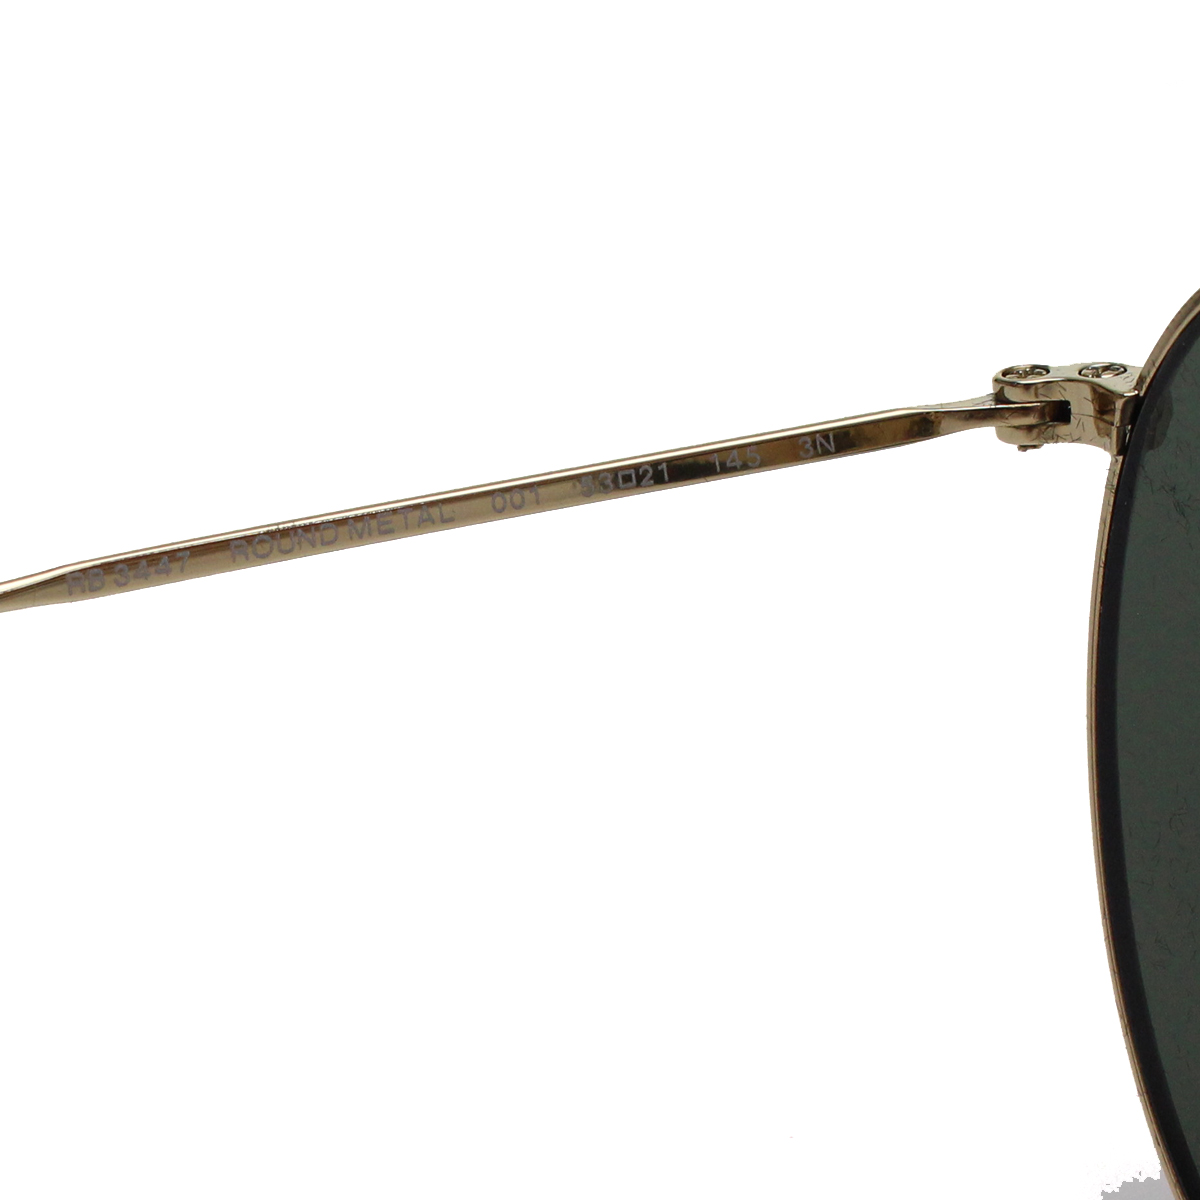 2340c9719e75 Bighit The total brand wholesale: Ray-Ban Ray-Ban sunglasses RB3447 ...